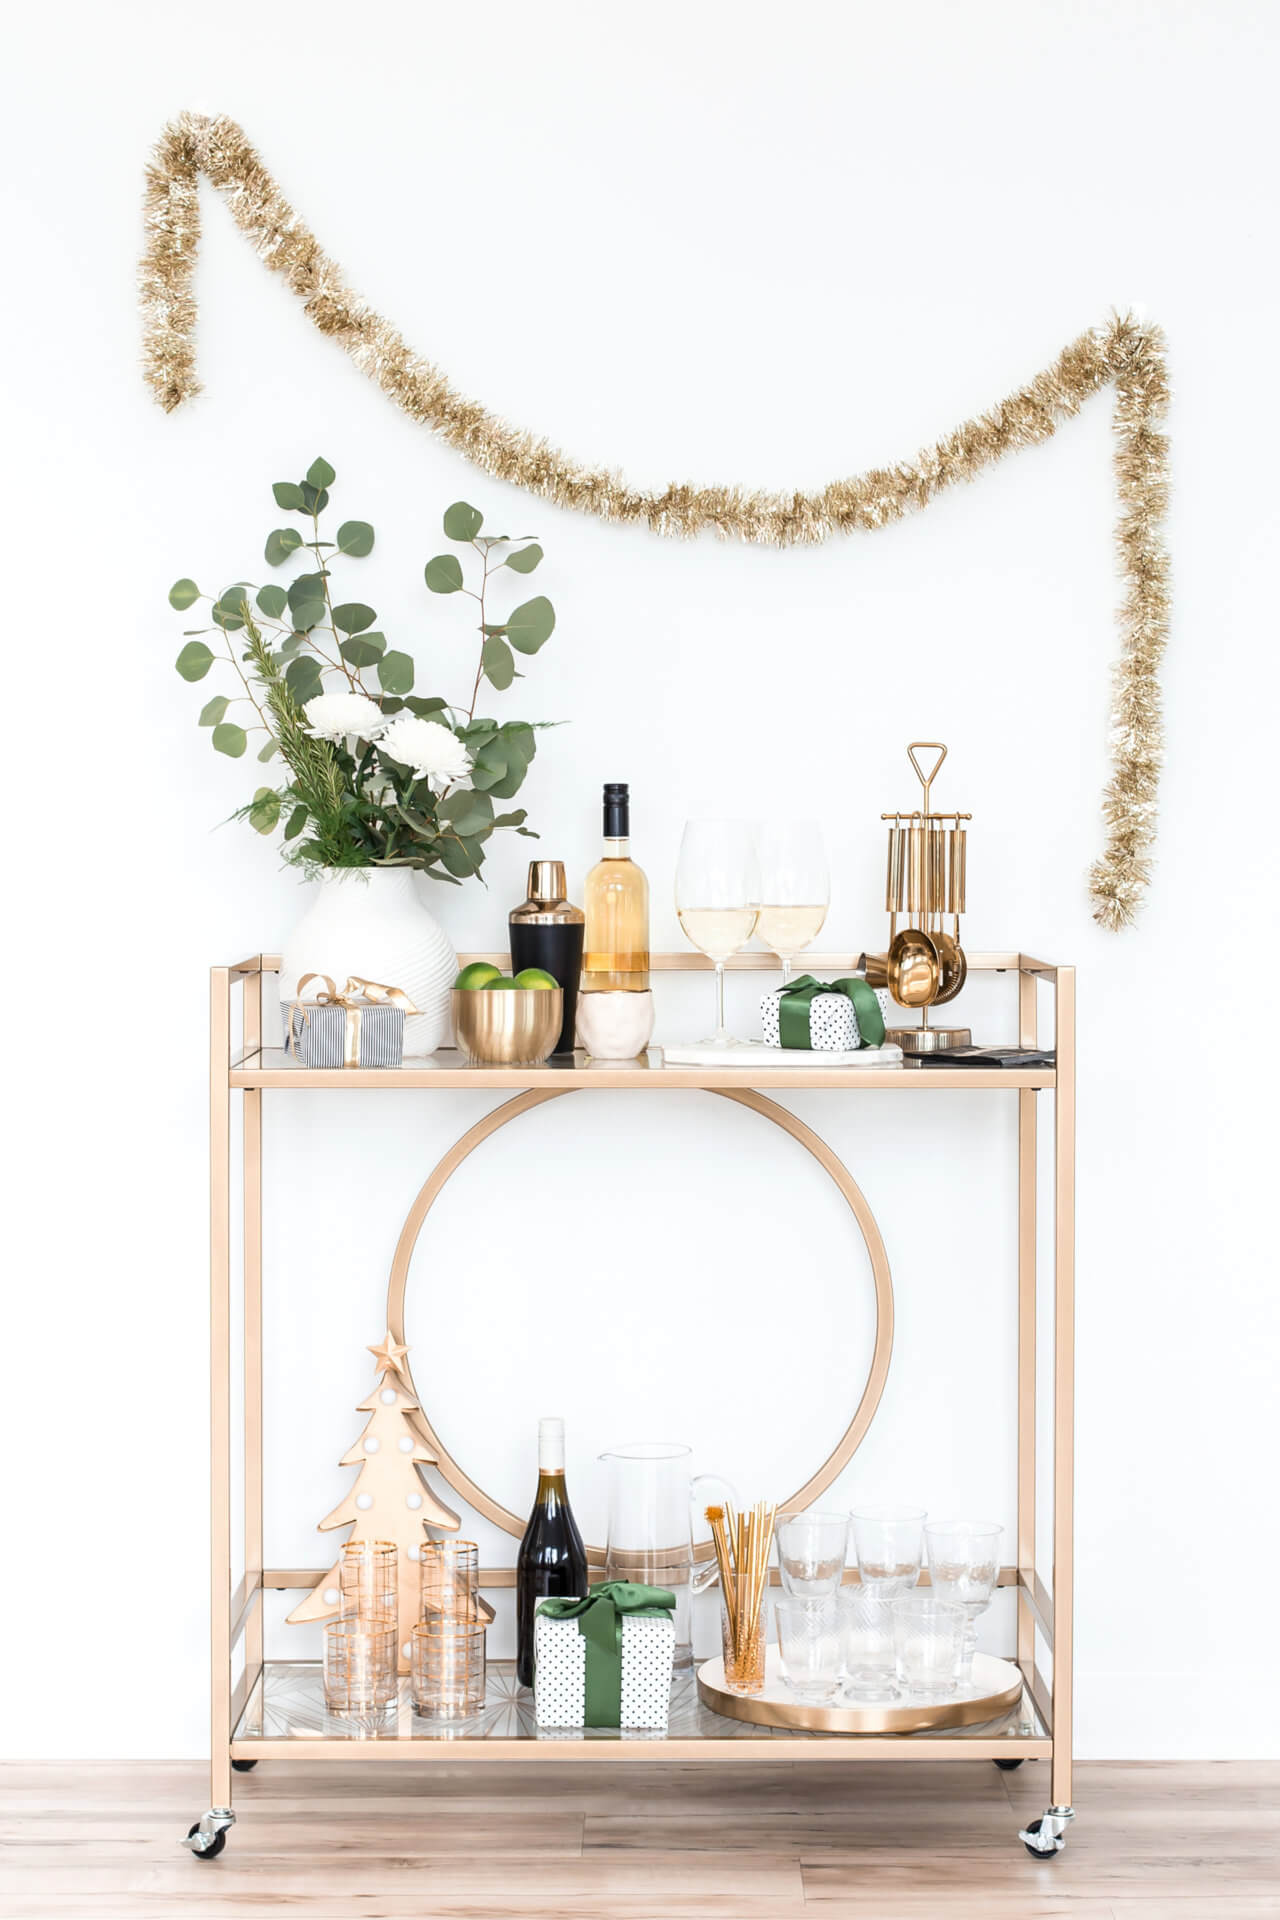 https://eden-law.com/wp-content/uploads/2019/12/haute-stock-photography-green-holiday-collection-final-13-1280x1920.jpg